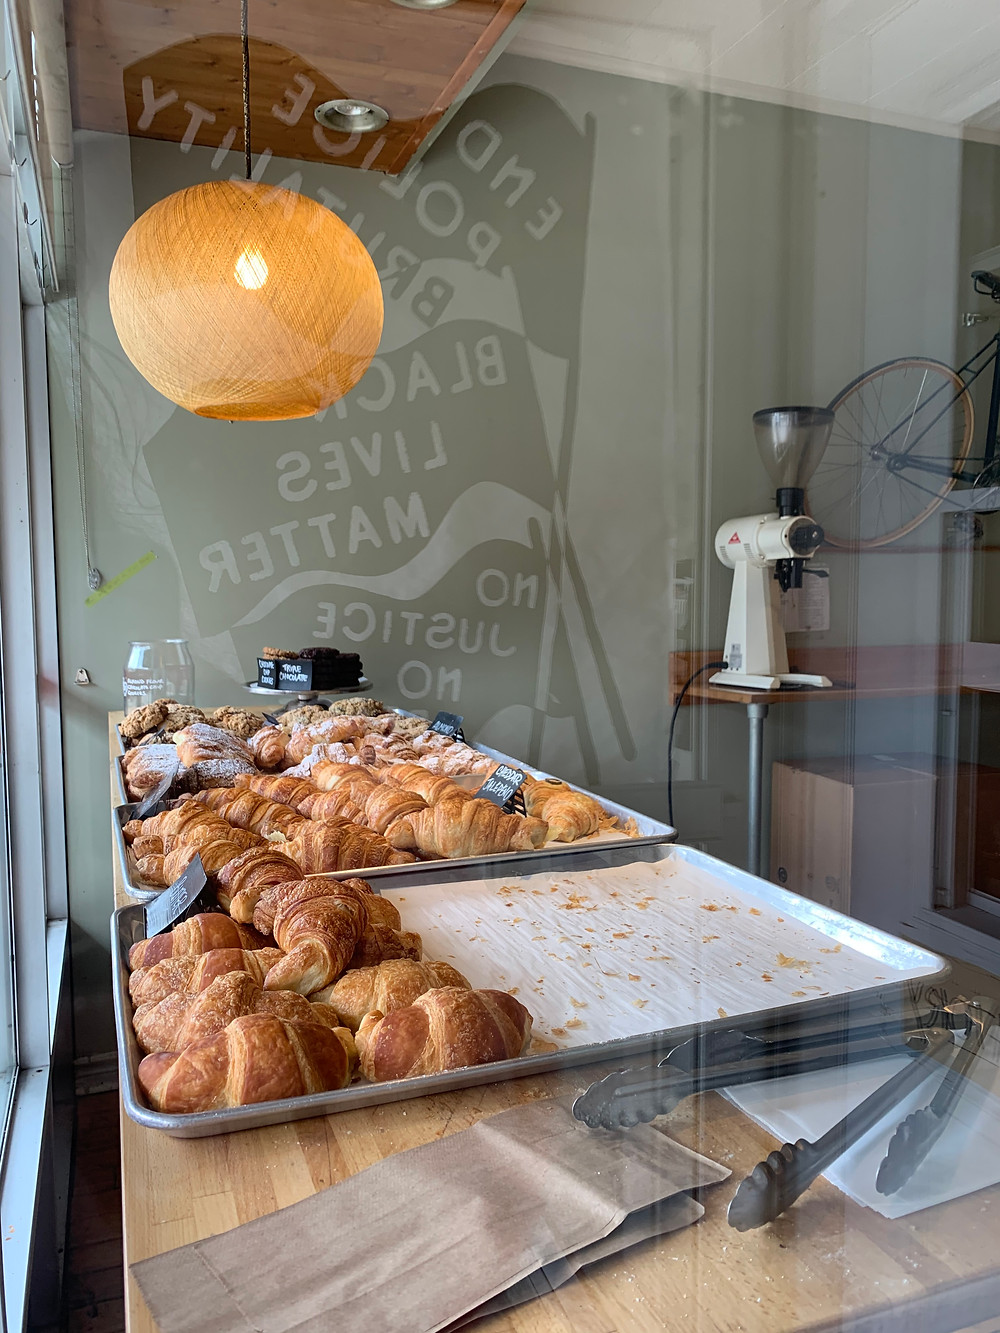 Croissants and baked goods at Cherry Bomb Coffee